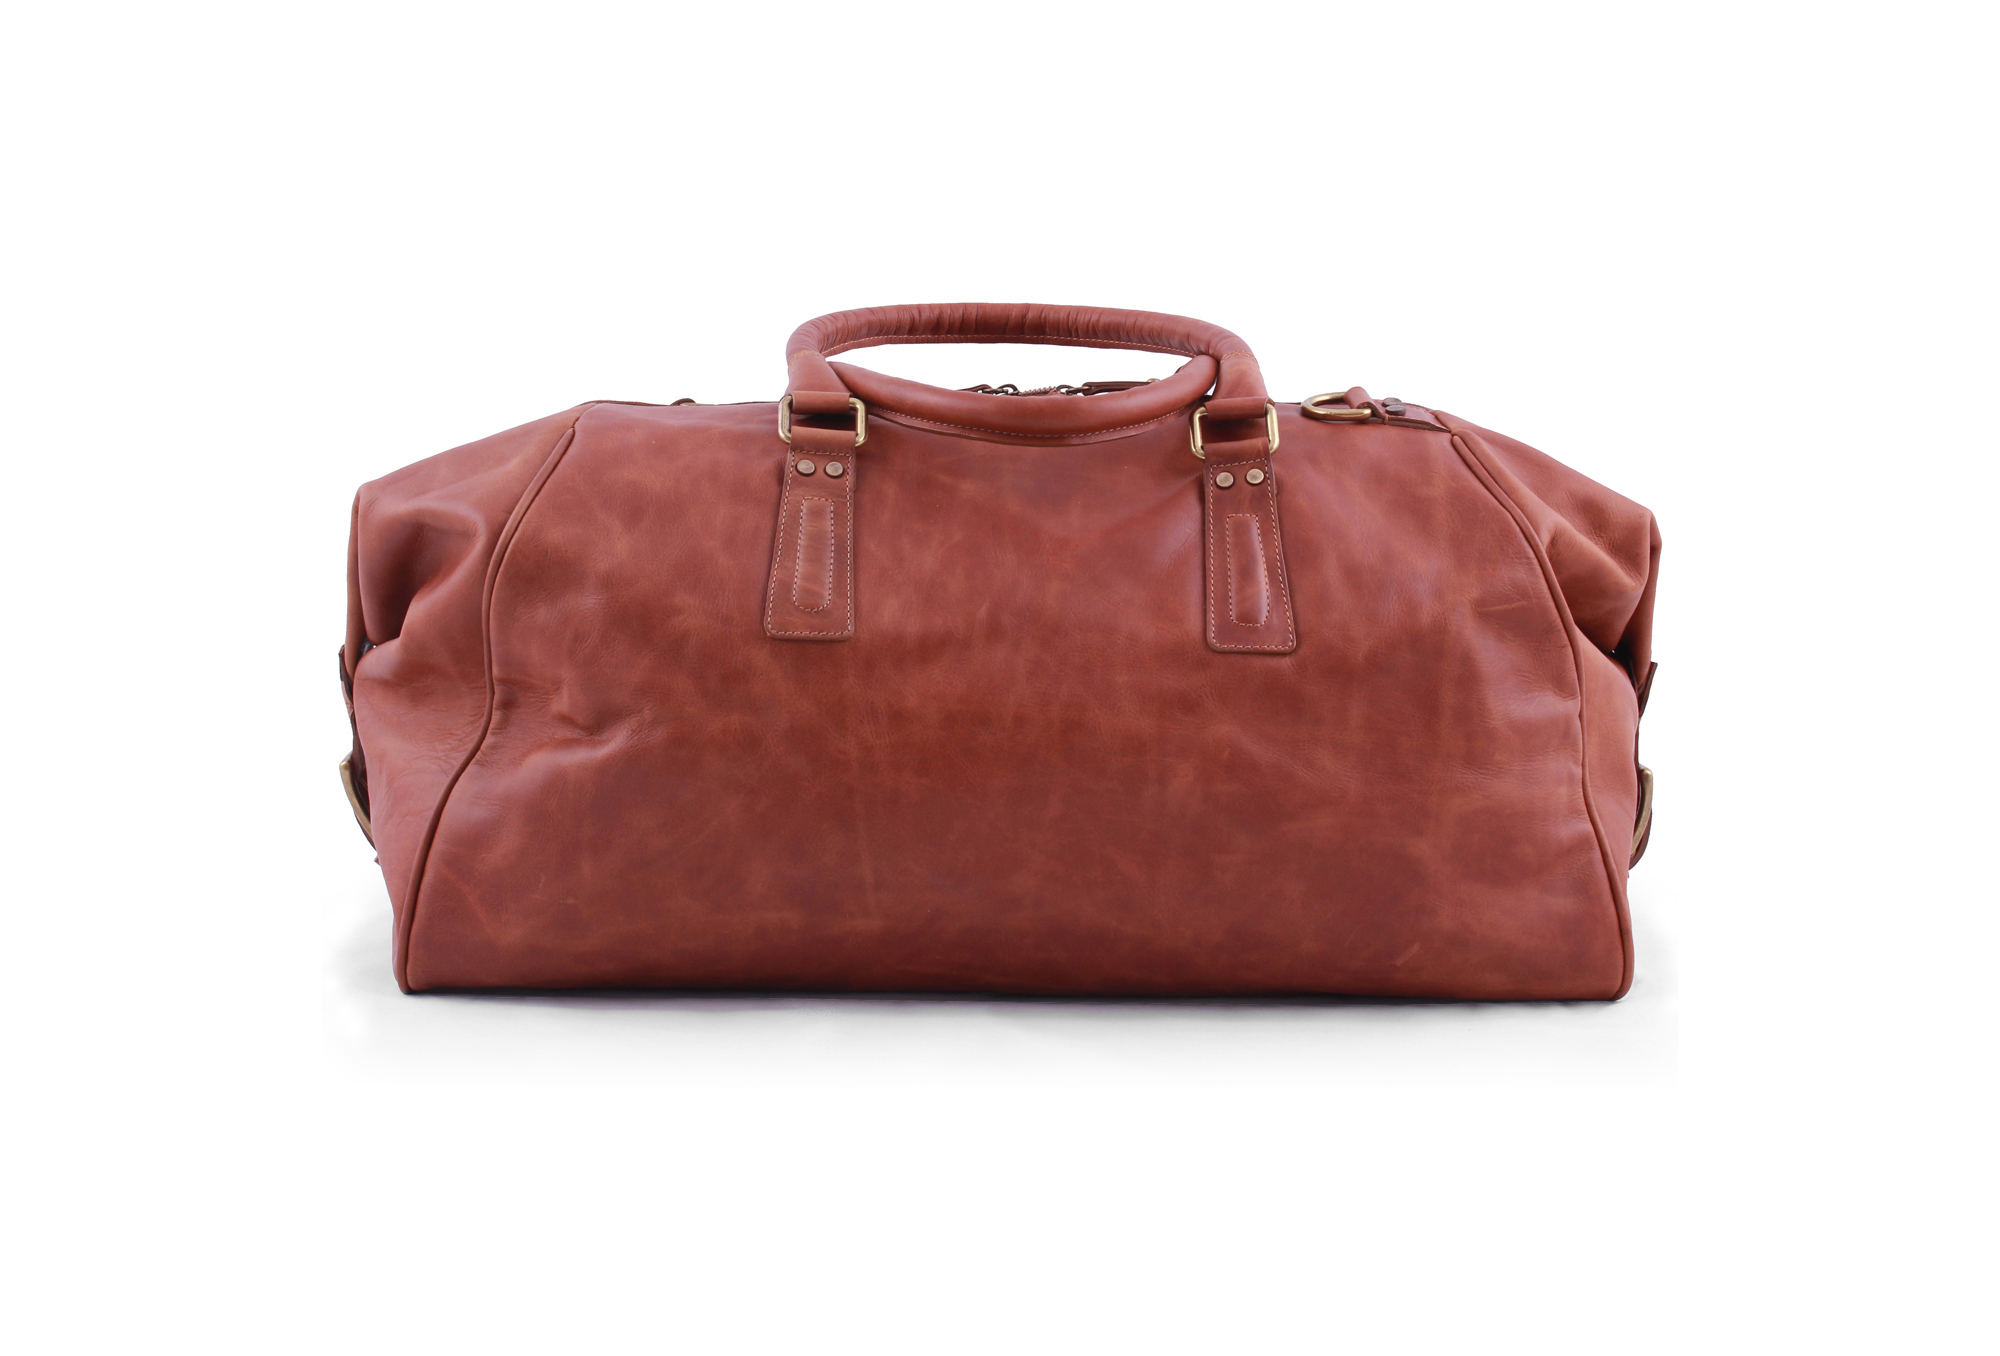 pampa puro suela leather large duffle bag